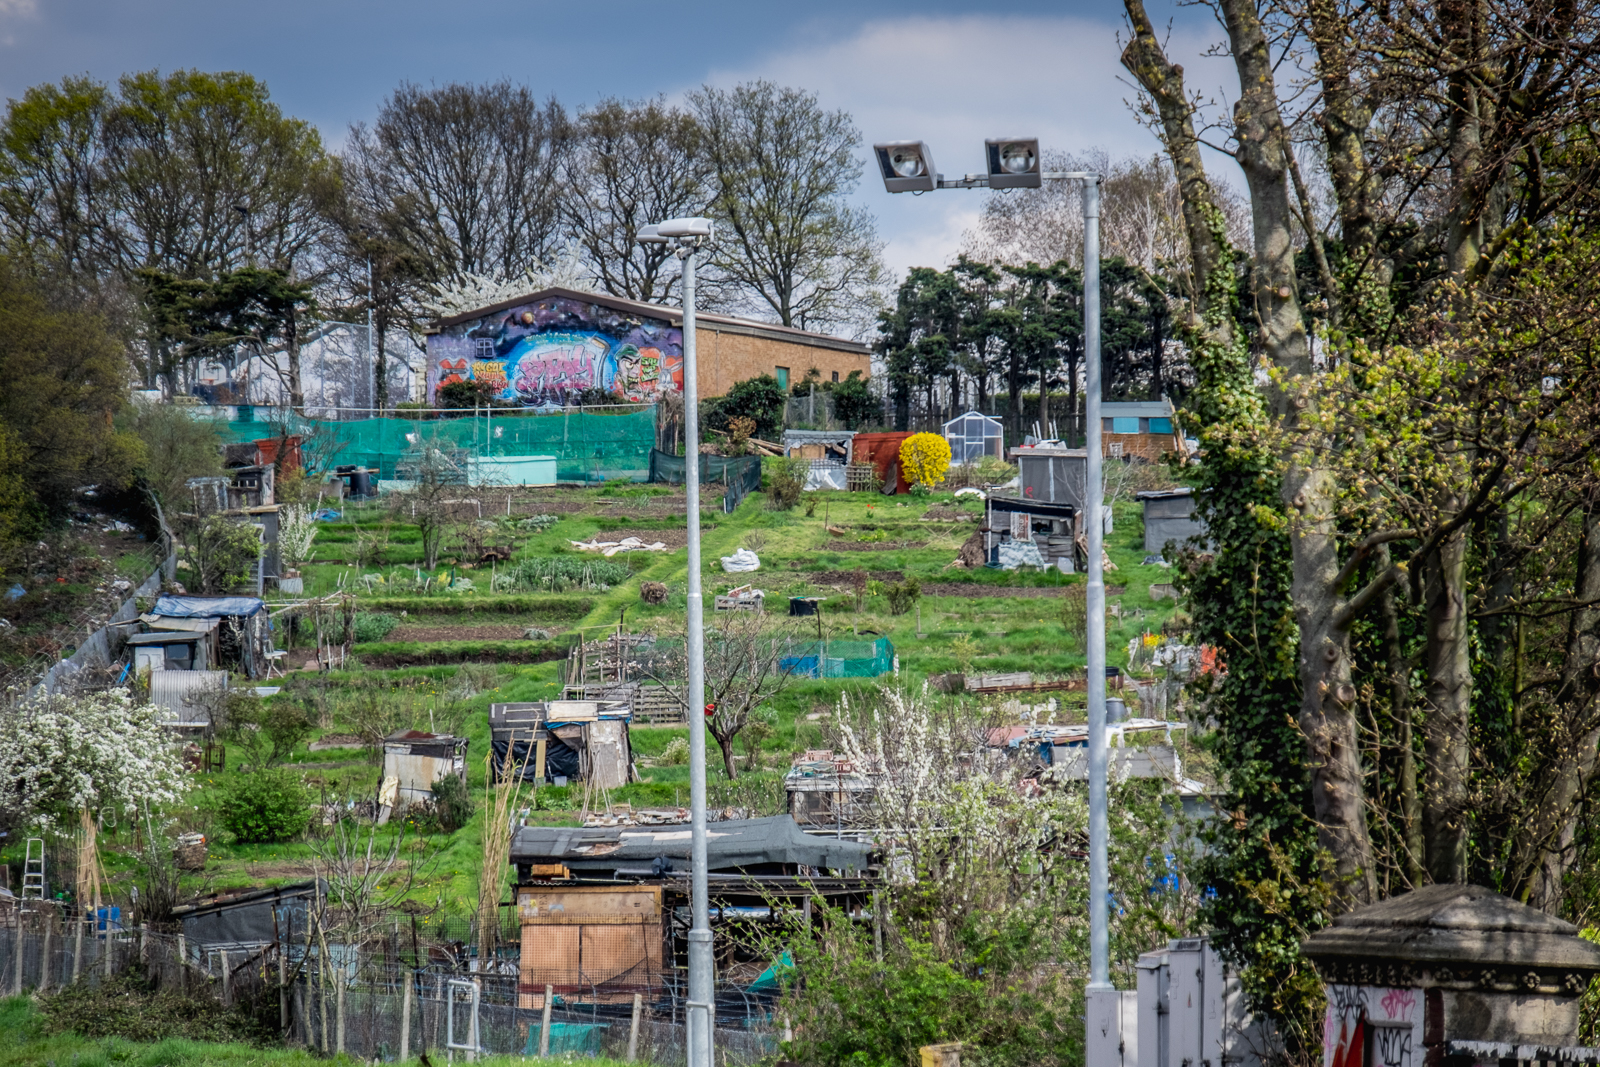 20160414_Lambeth_Tulse-Hill_Allotments-by-the-station